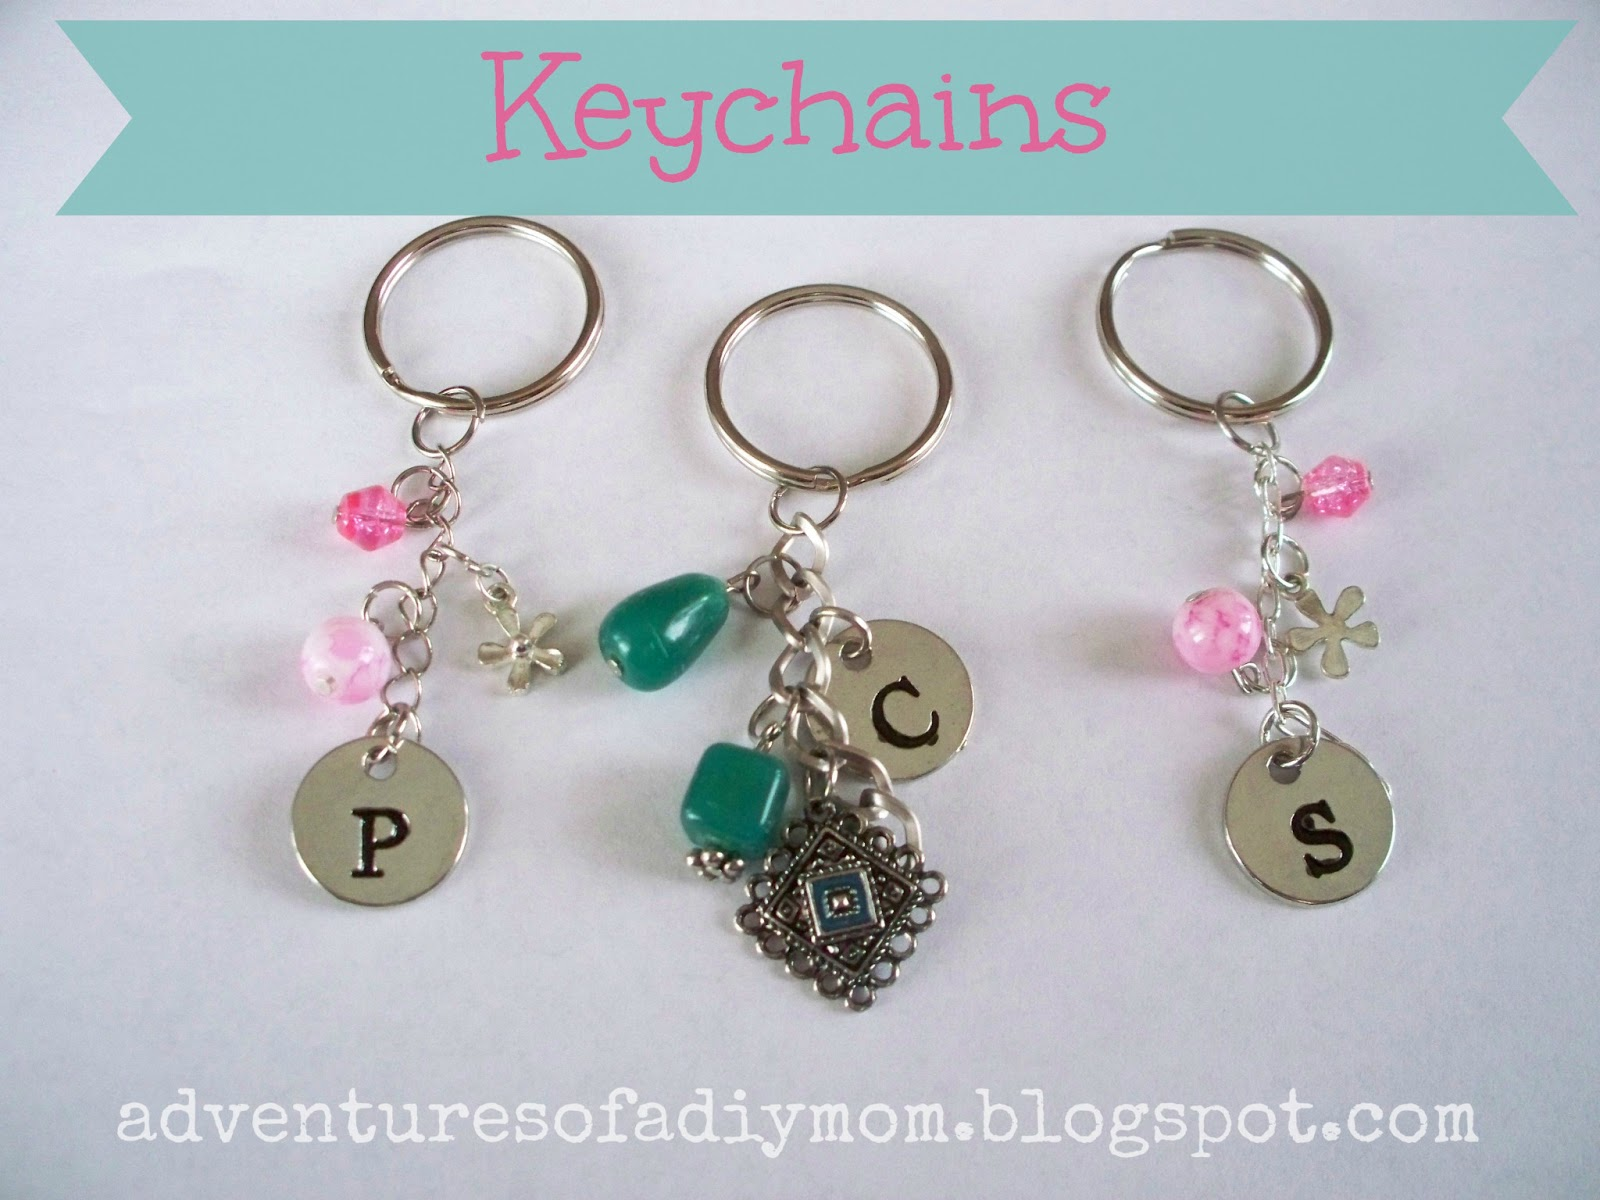 How to Make Your Own Keychains - Adventures of a DIY Mom a372a82bd